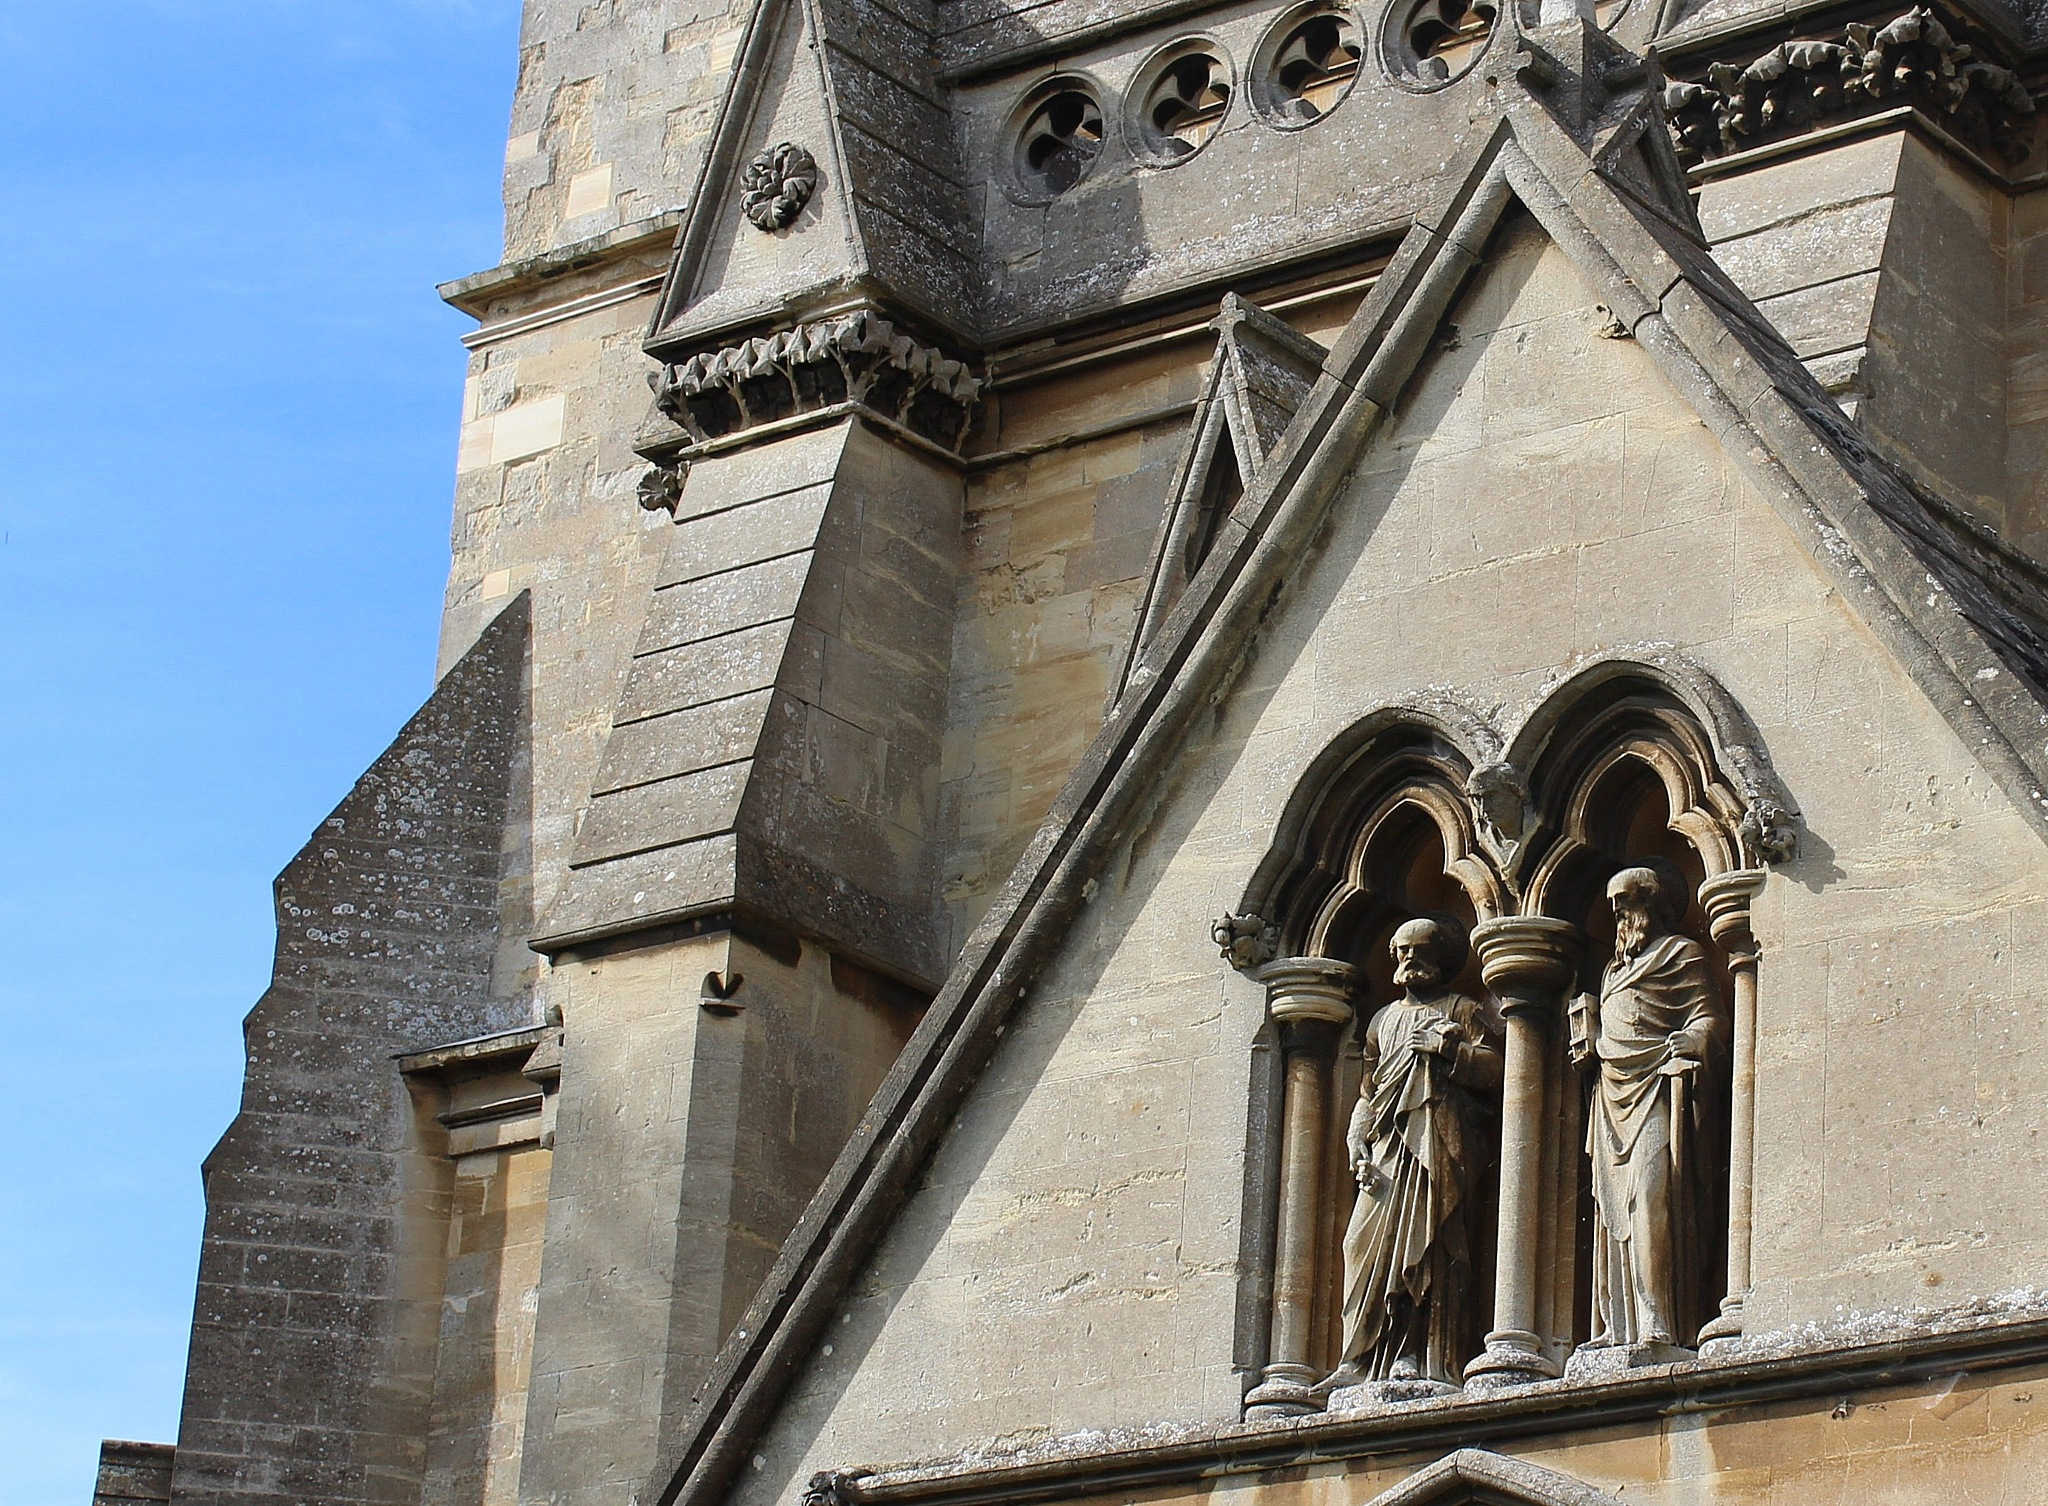 blue sky and church detail in Buckingham by Jane Rue